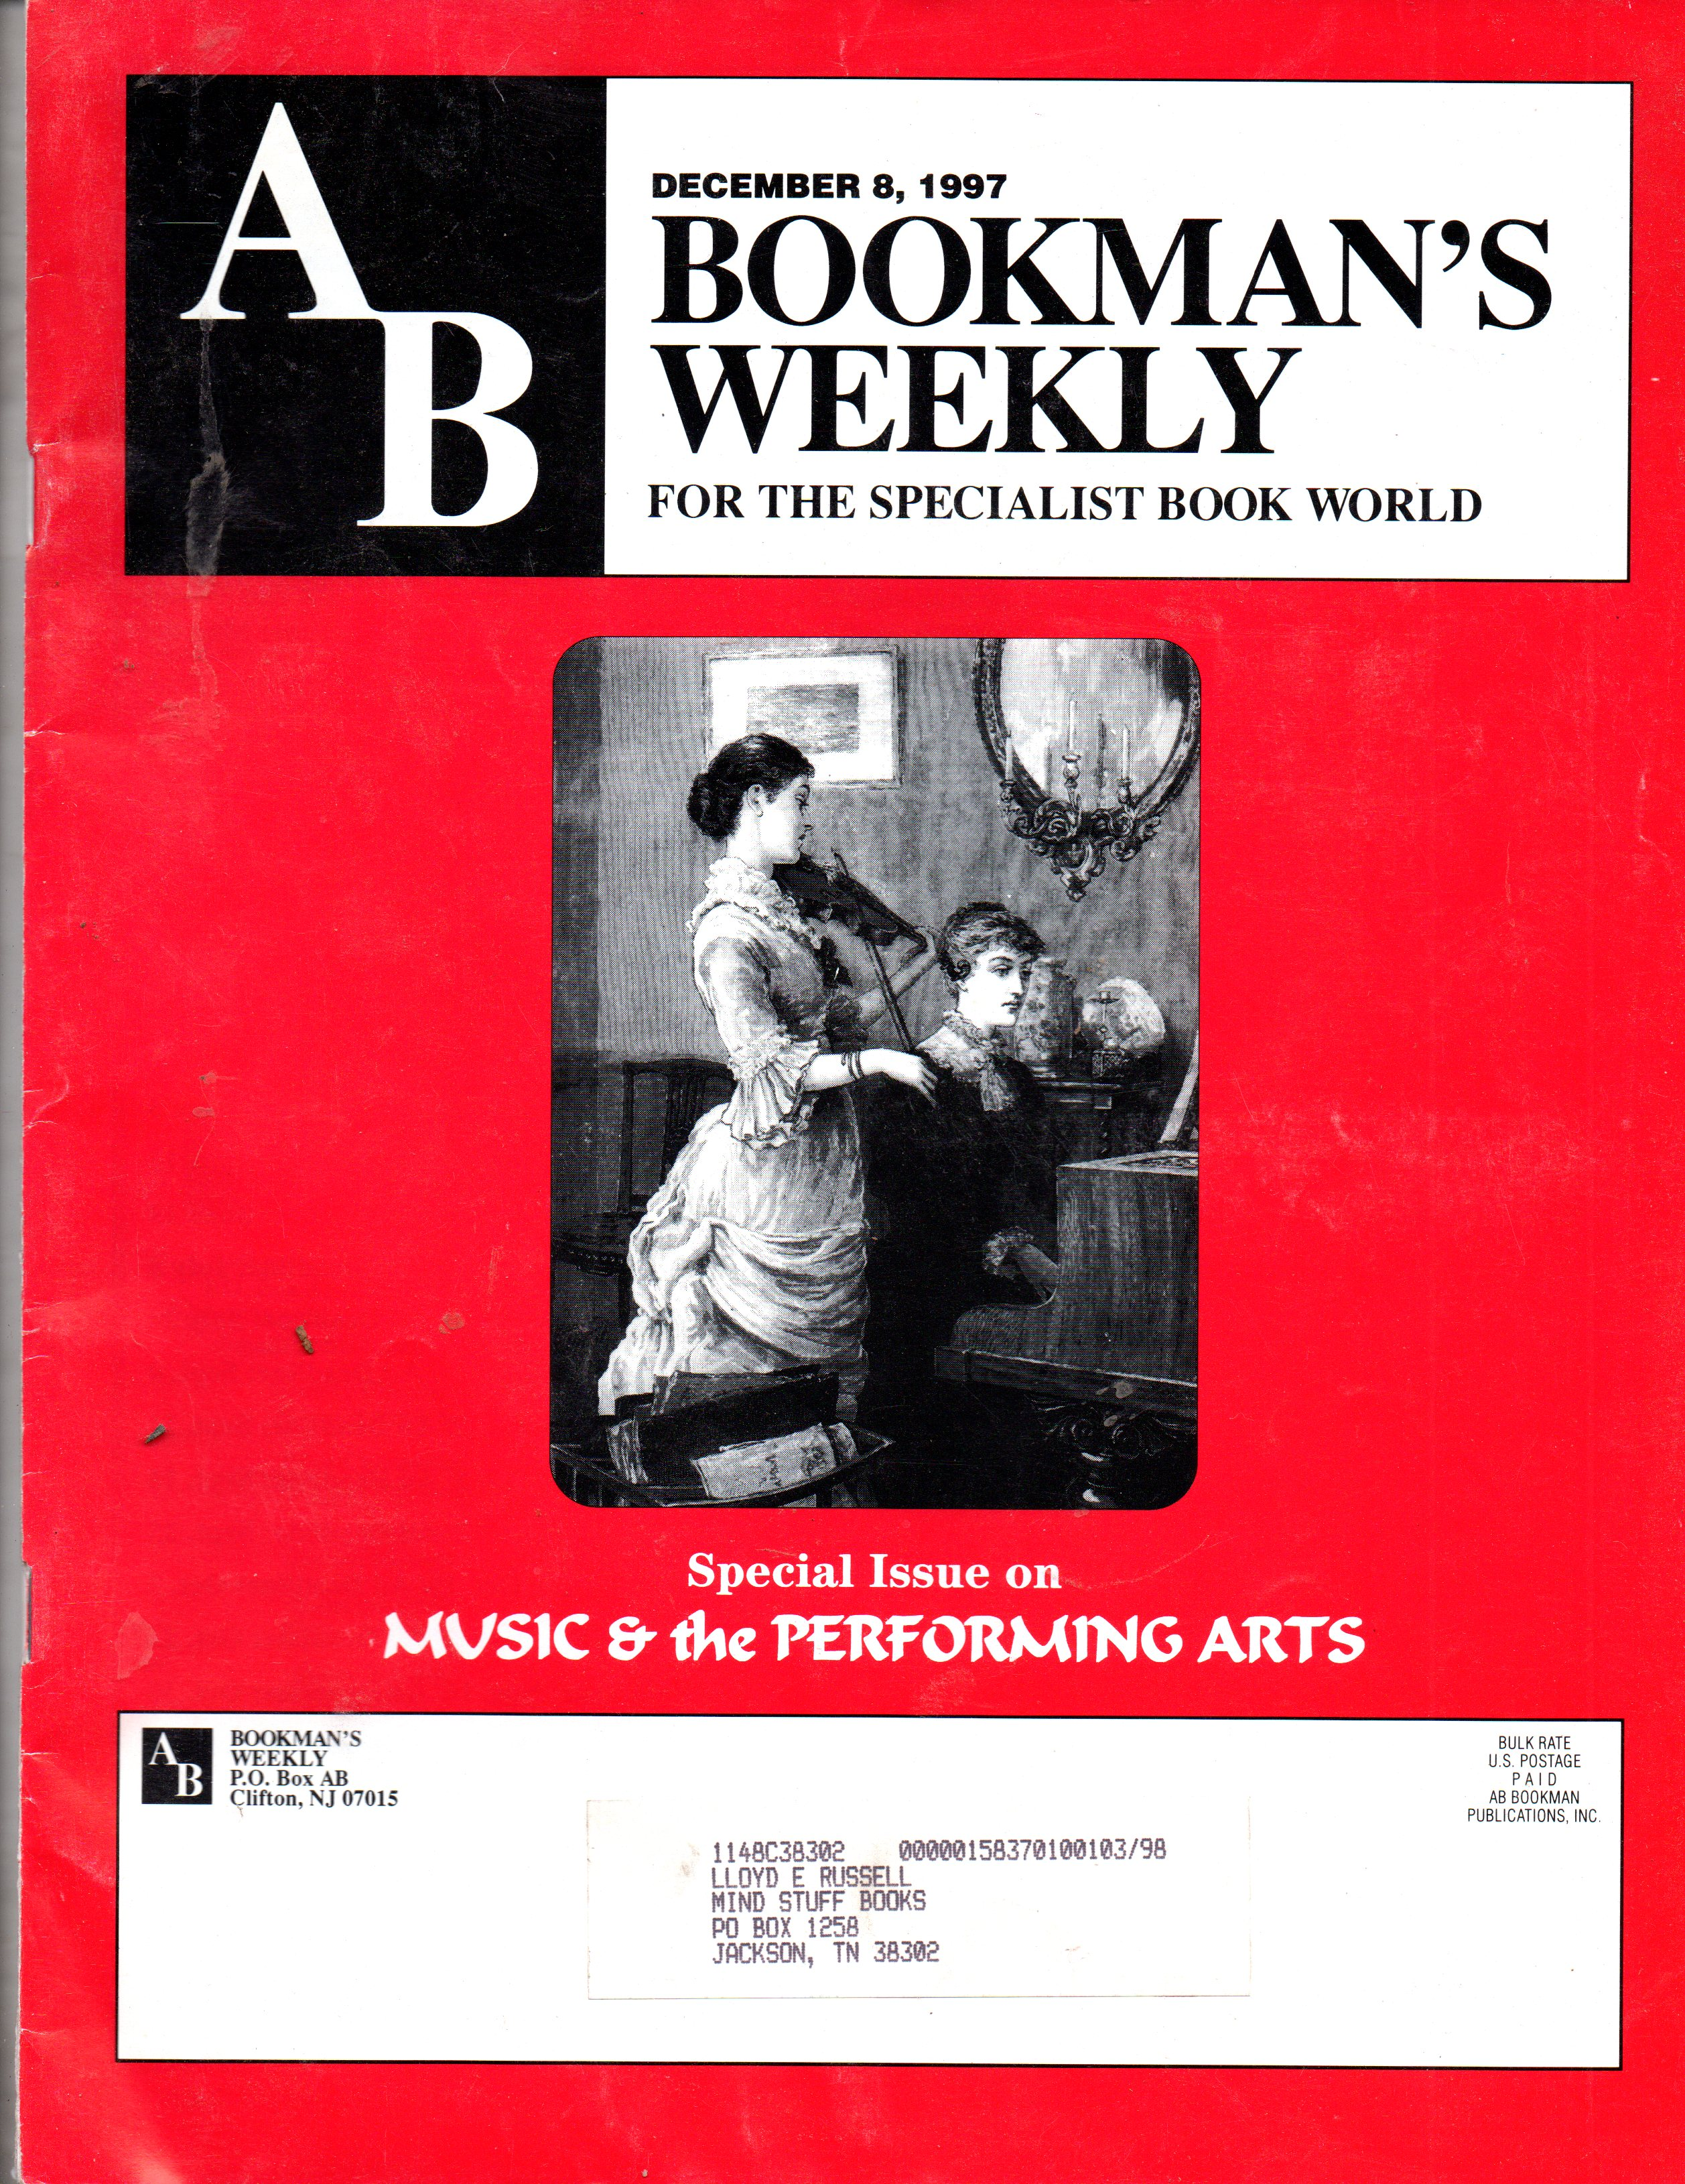 Image for AB Bookman's Weekly December 8, 1997